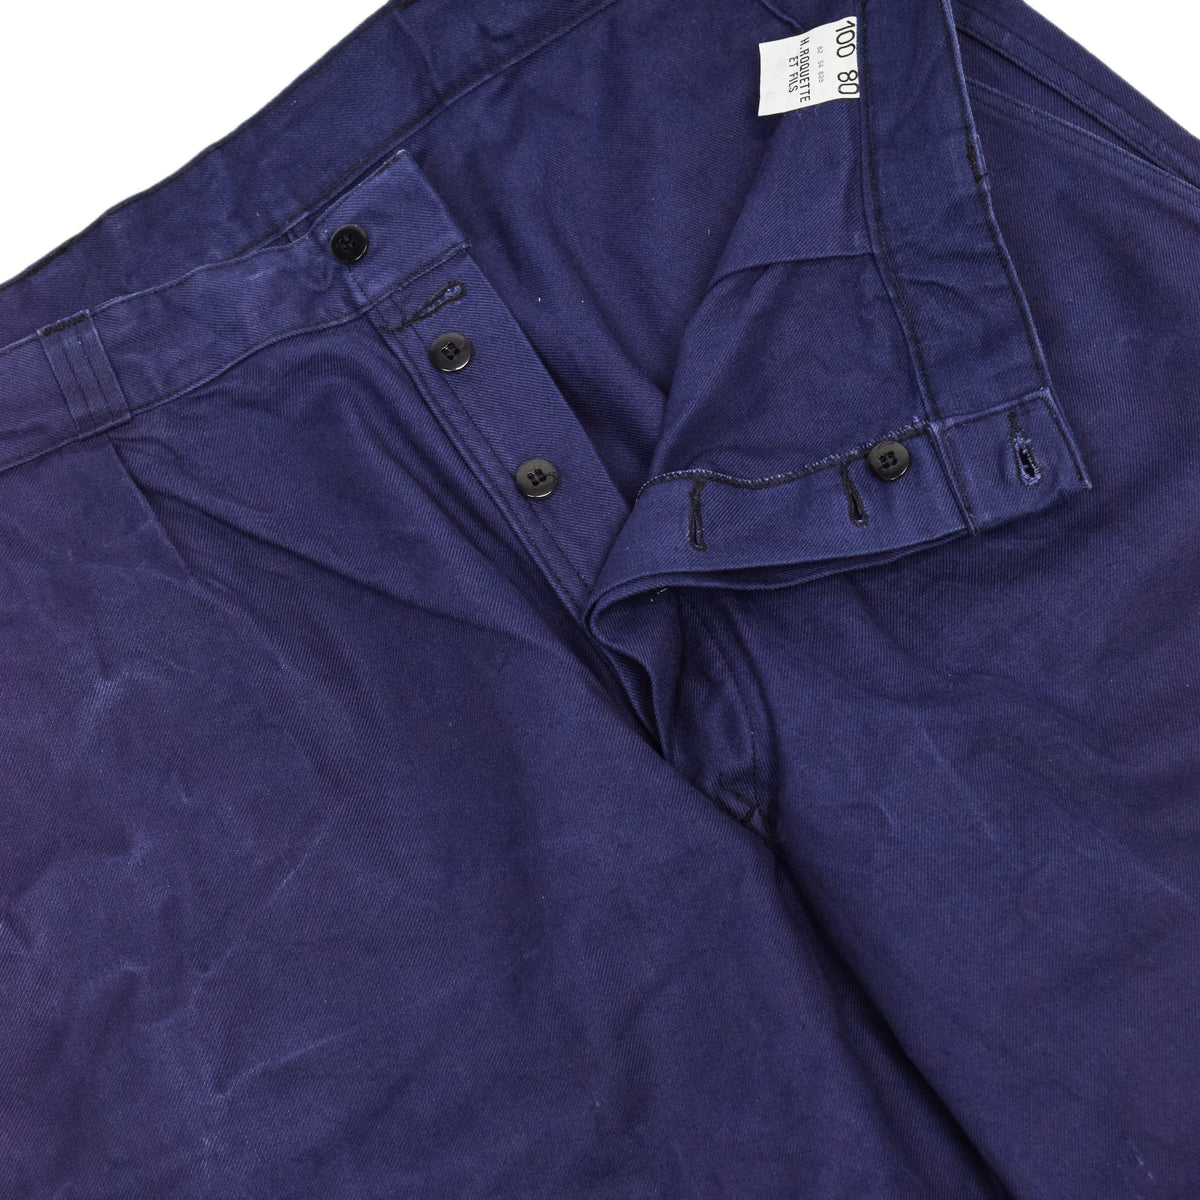 Vintage Indigo Blue French Work Pant Utility Trousers Made in France 38 W 30 L crotch